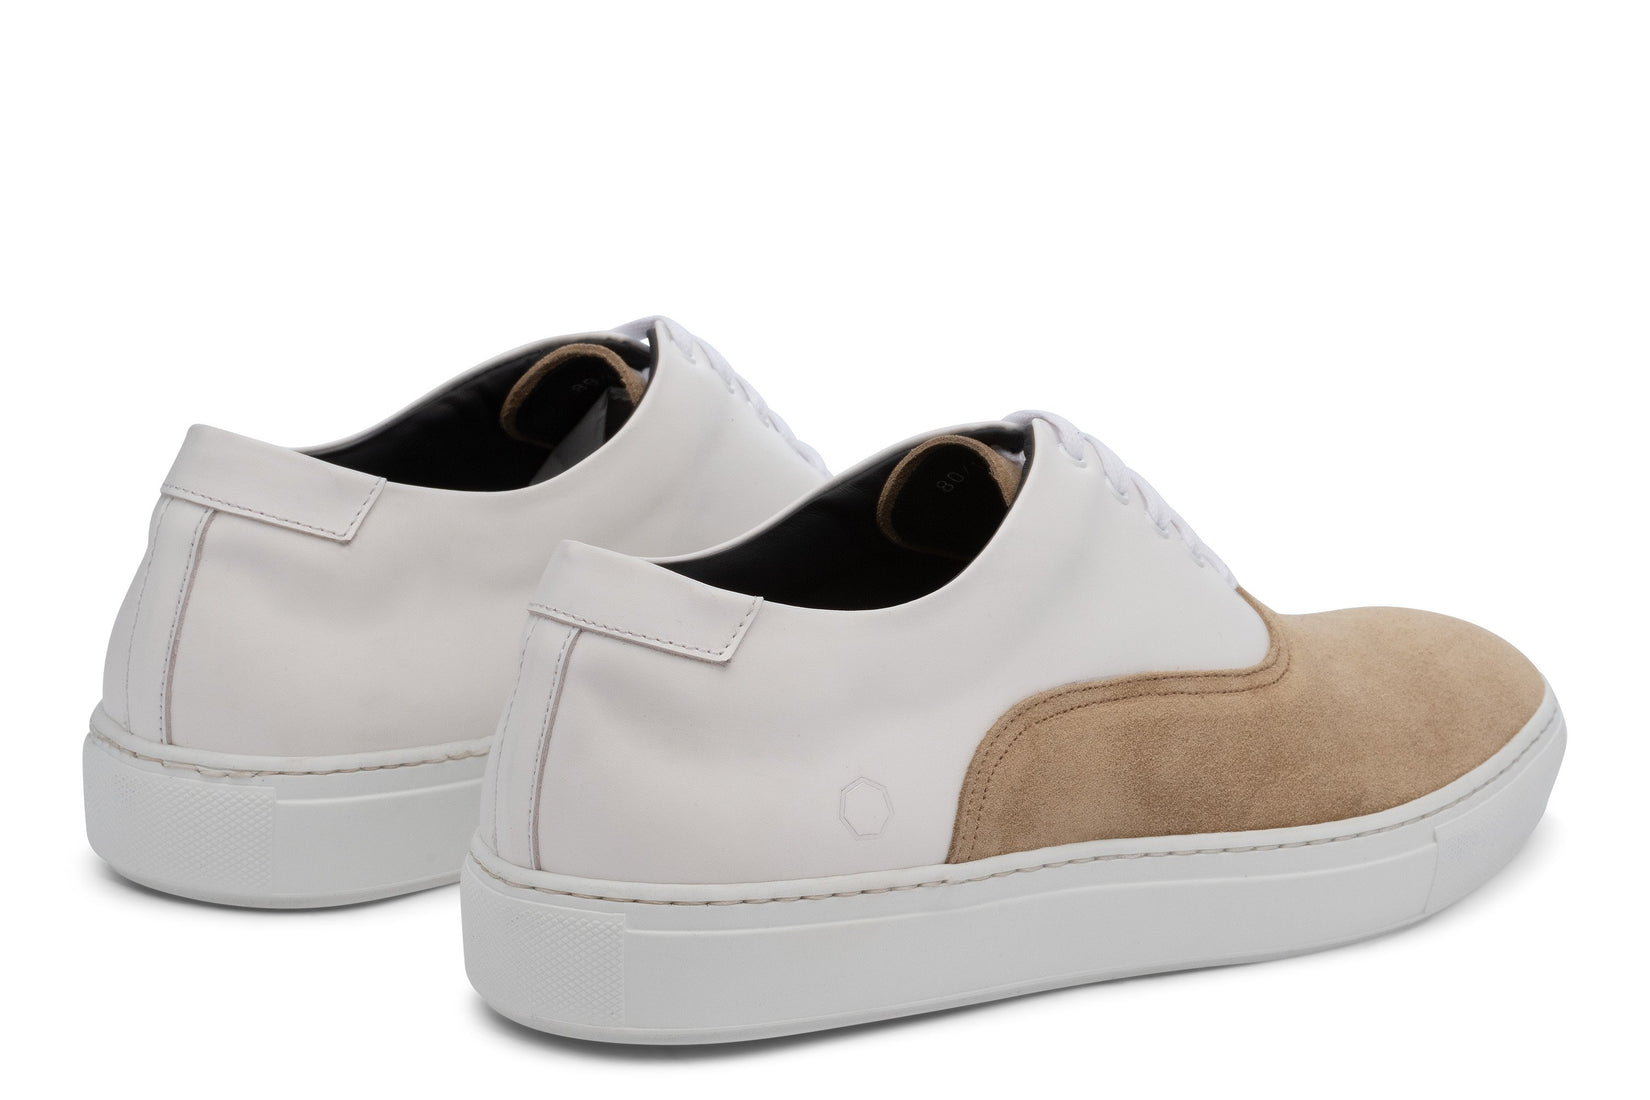 Sunday Two-Tone Skater Sneaker White/Beige